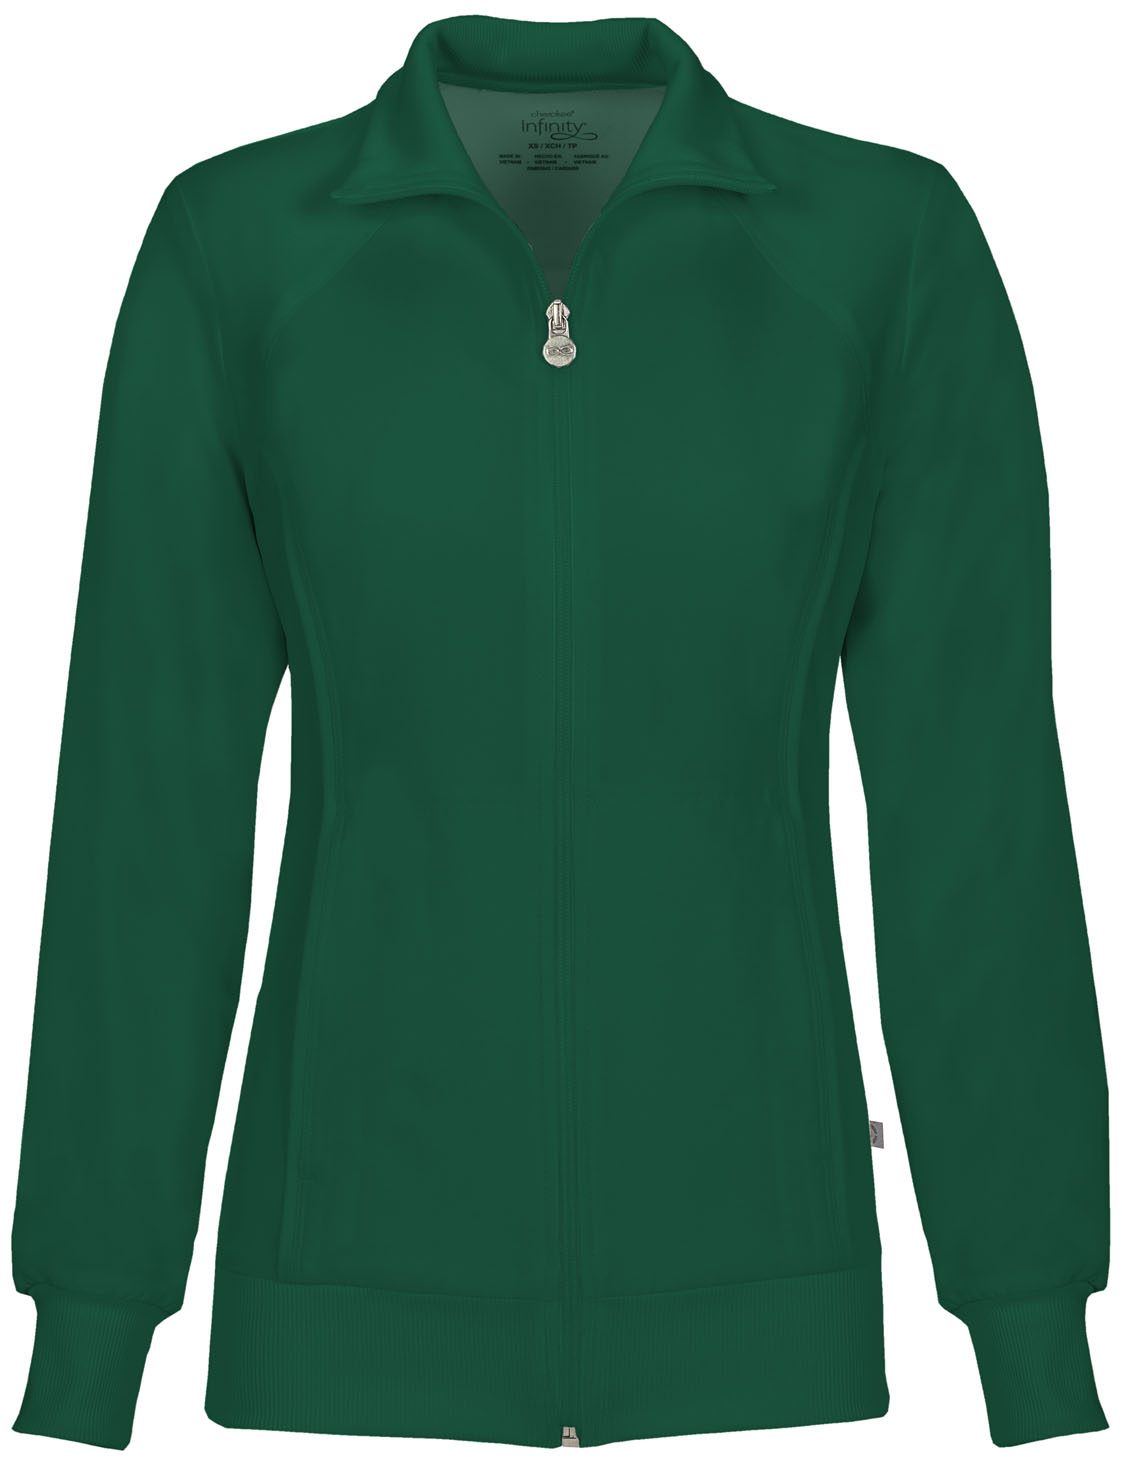 a477954923b Infinity Zip Front Warm-Up Jacket in Hunter Green 2391A-HNPS from ...